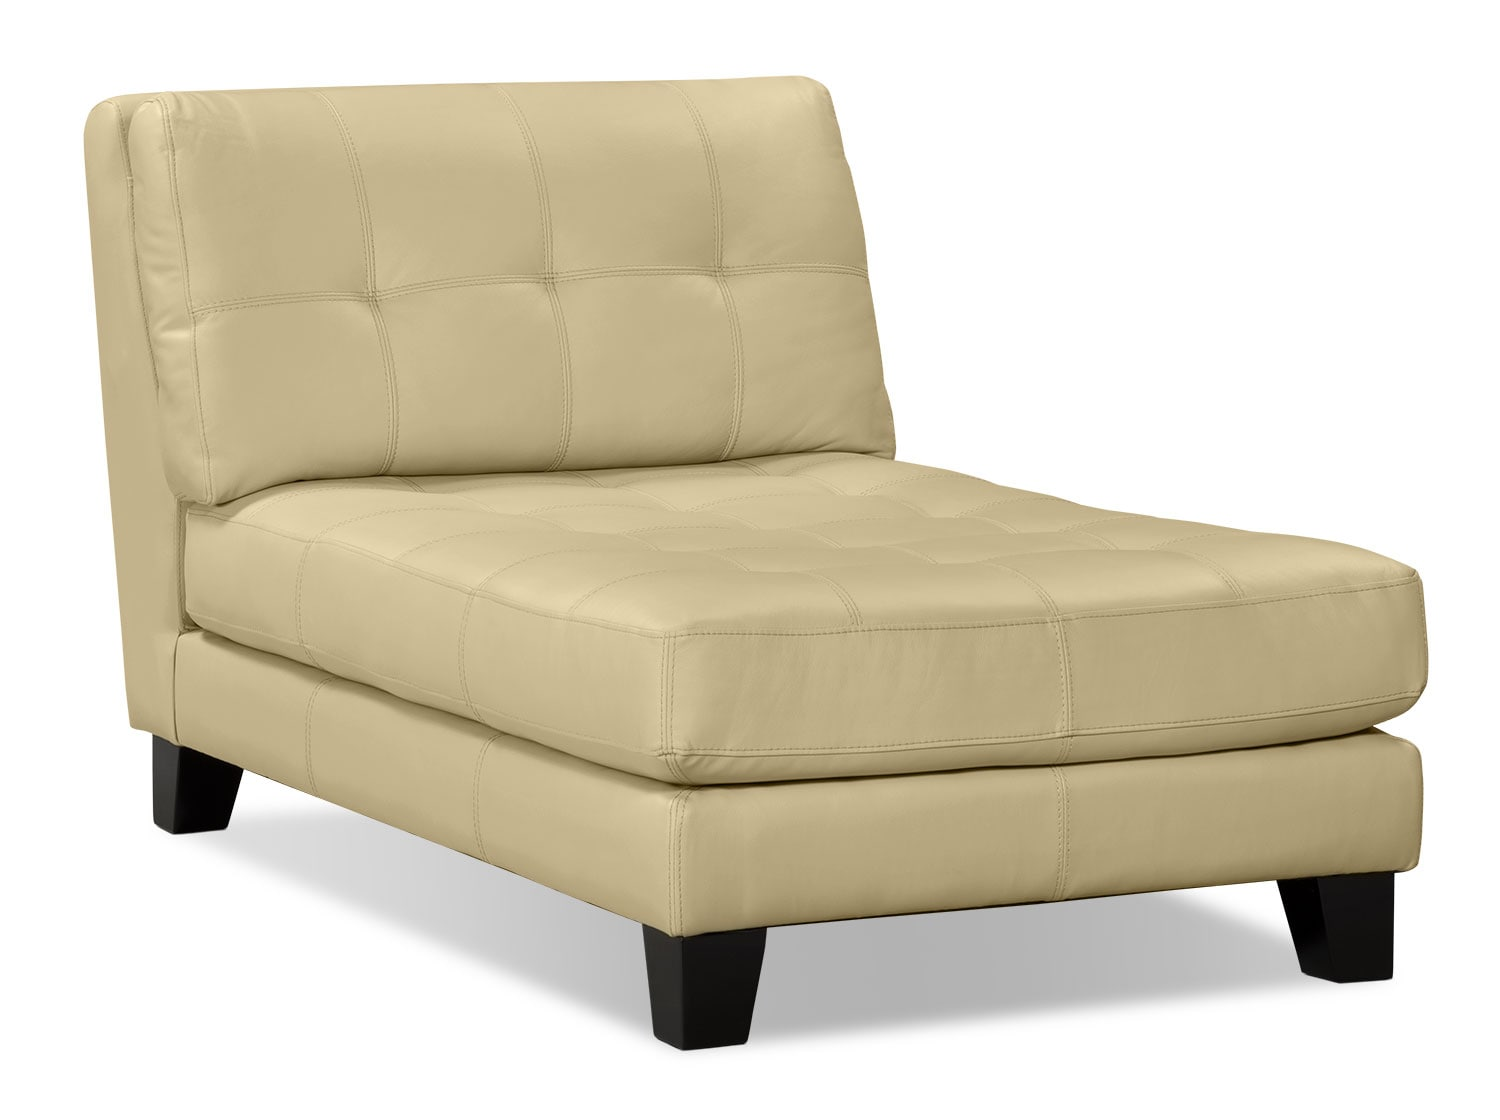 Living Room Furniture - Avenue Genuine Leather Chaise - Ivory